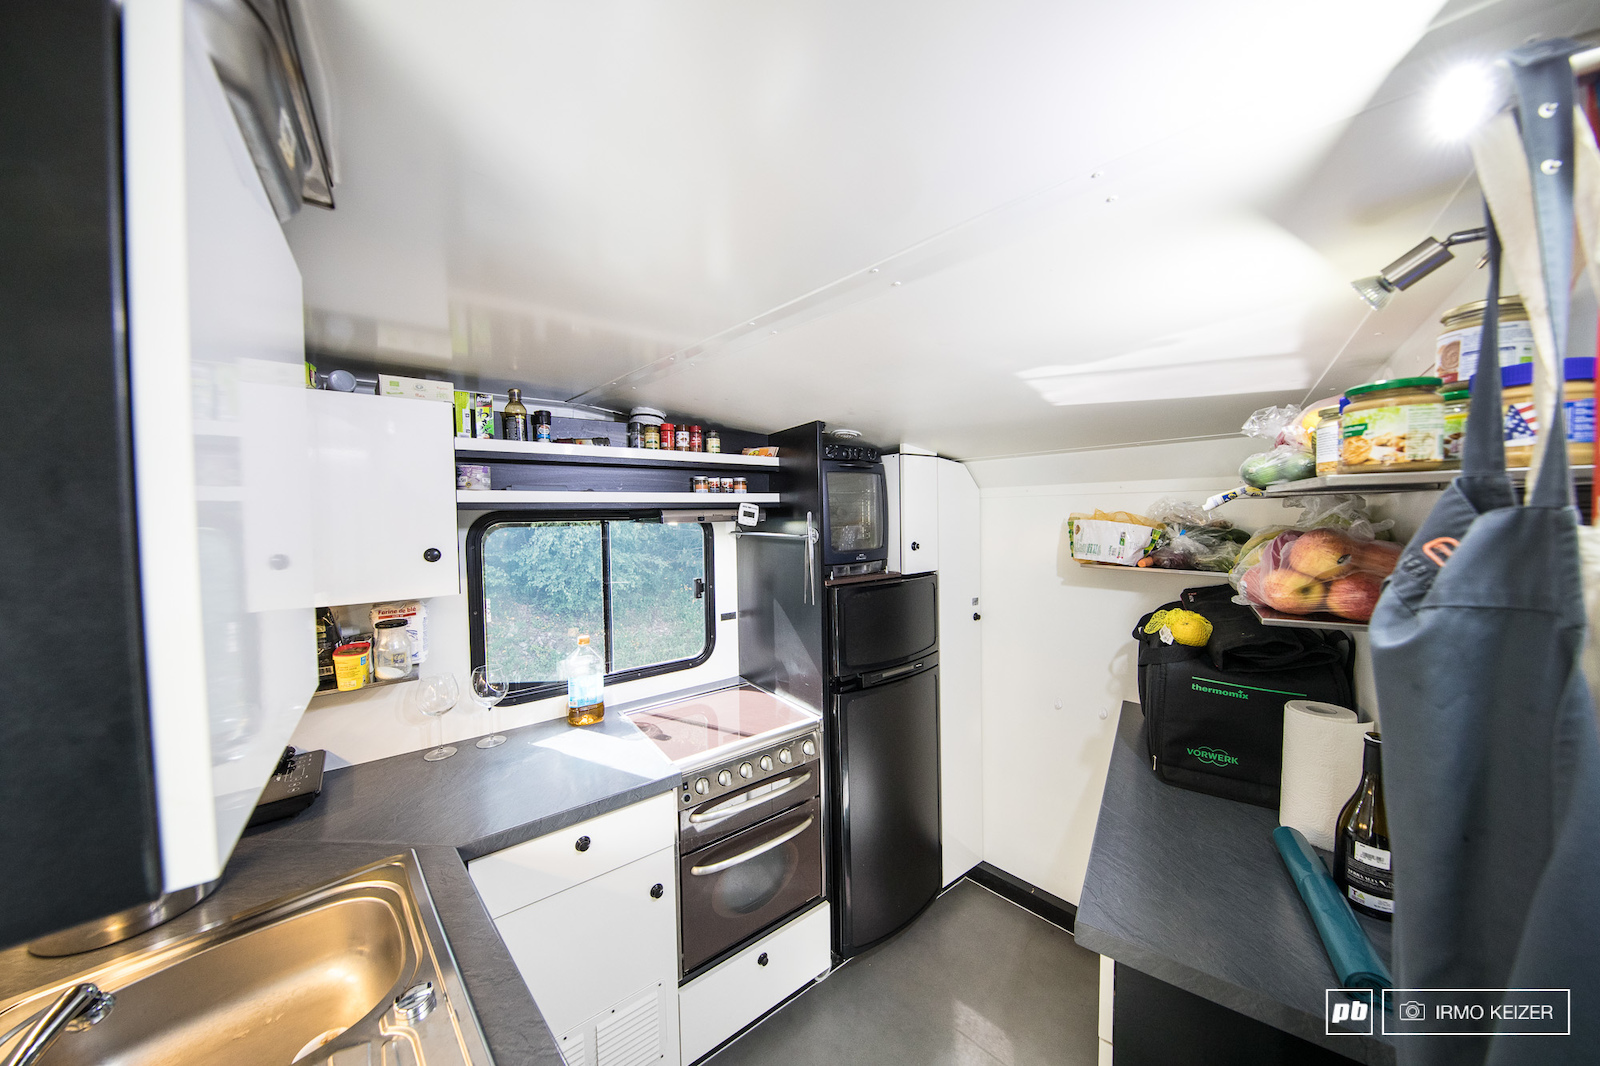 A fully equipped kitchen. This is where the magic happens. A hot air oven grill cooking plate and steamer provide the chef s backbone. Fridges can be found throughout the truck.